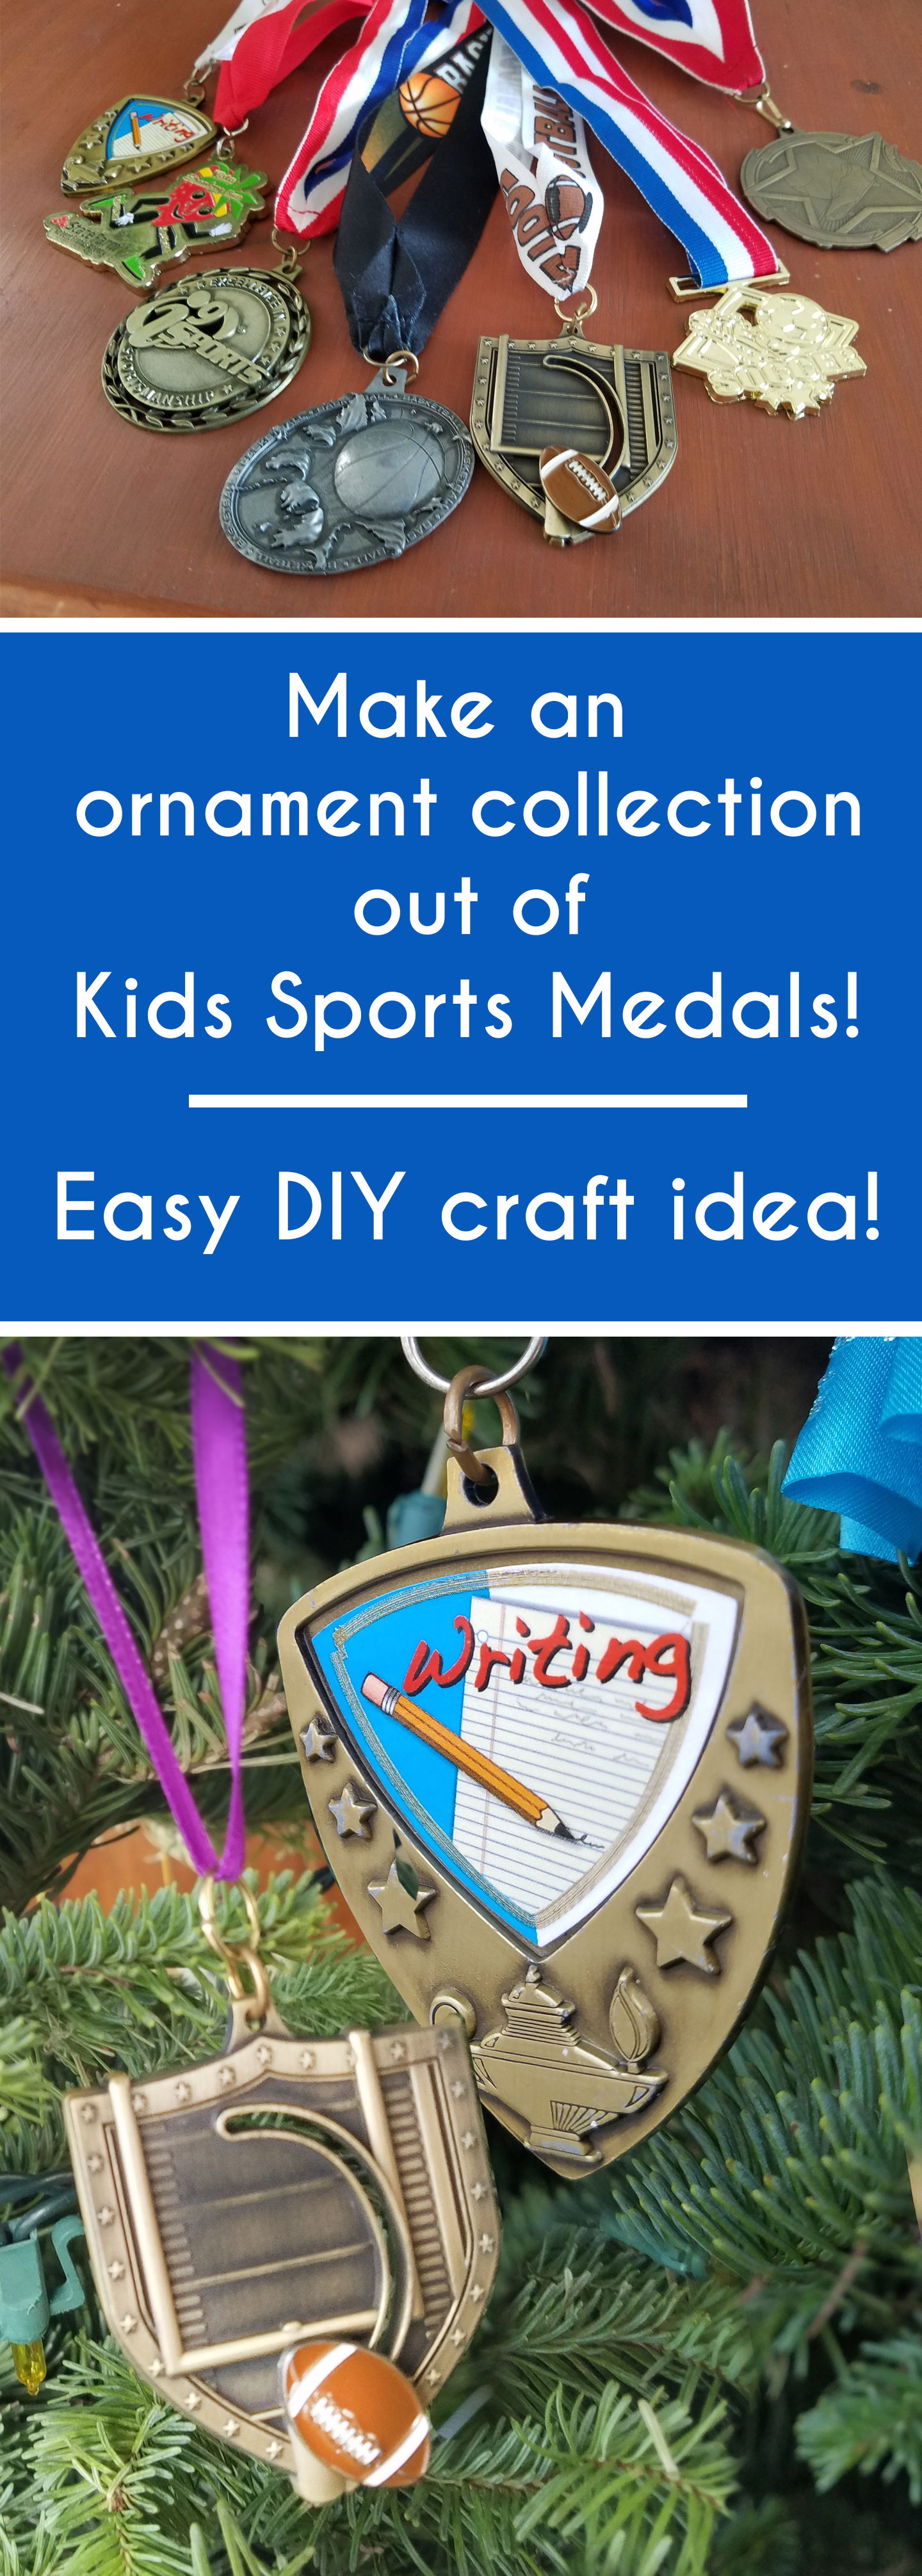 diy ornament out of kids sports medals